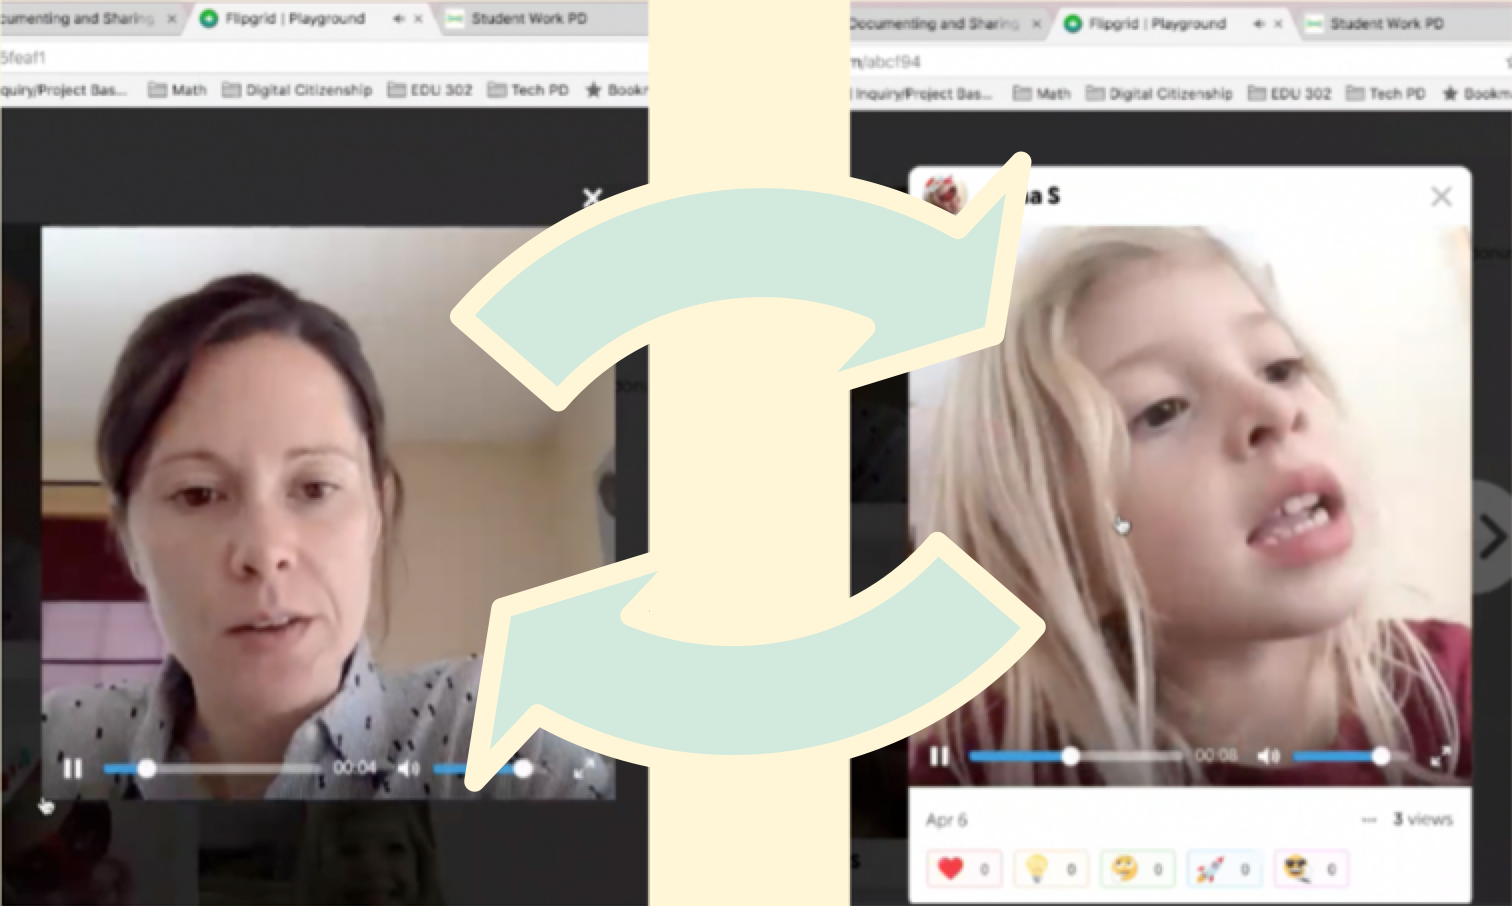 Flipgrid video images with 2 curved arrows pointing from one image to the other, both left and right; the left image is Meredith and the right image is Anna